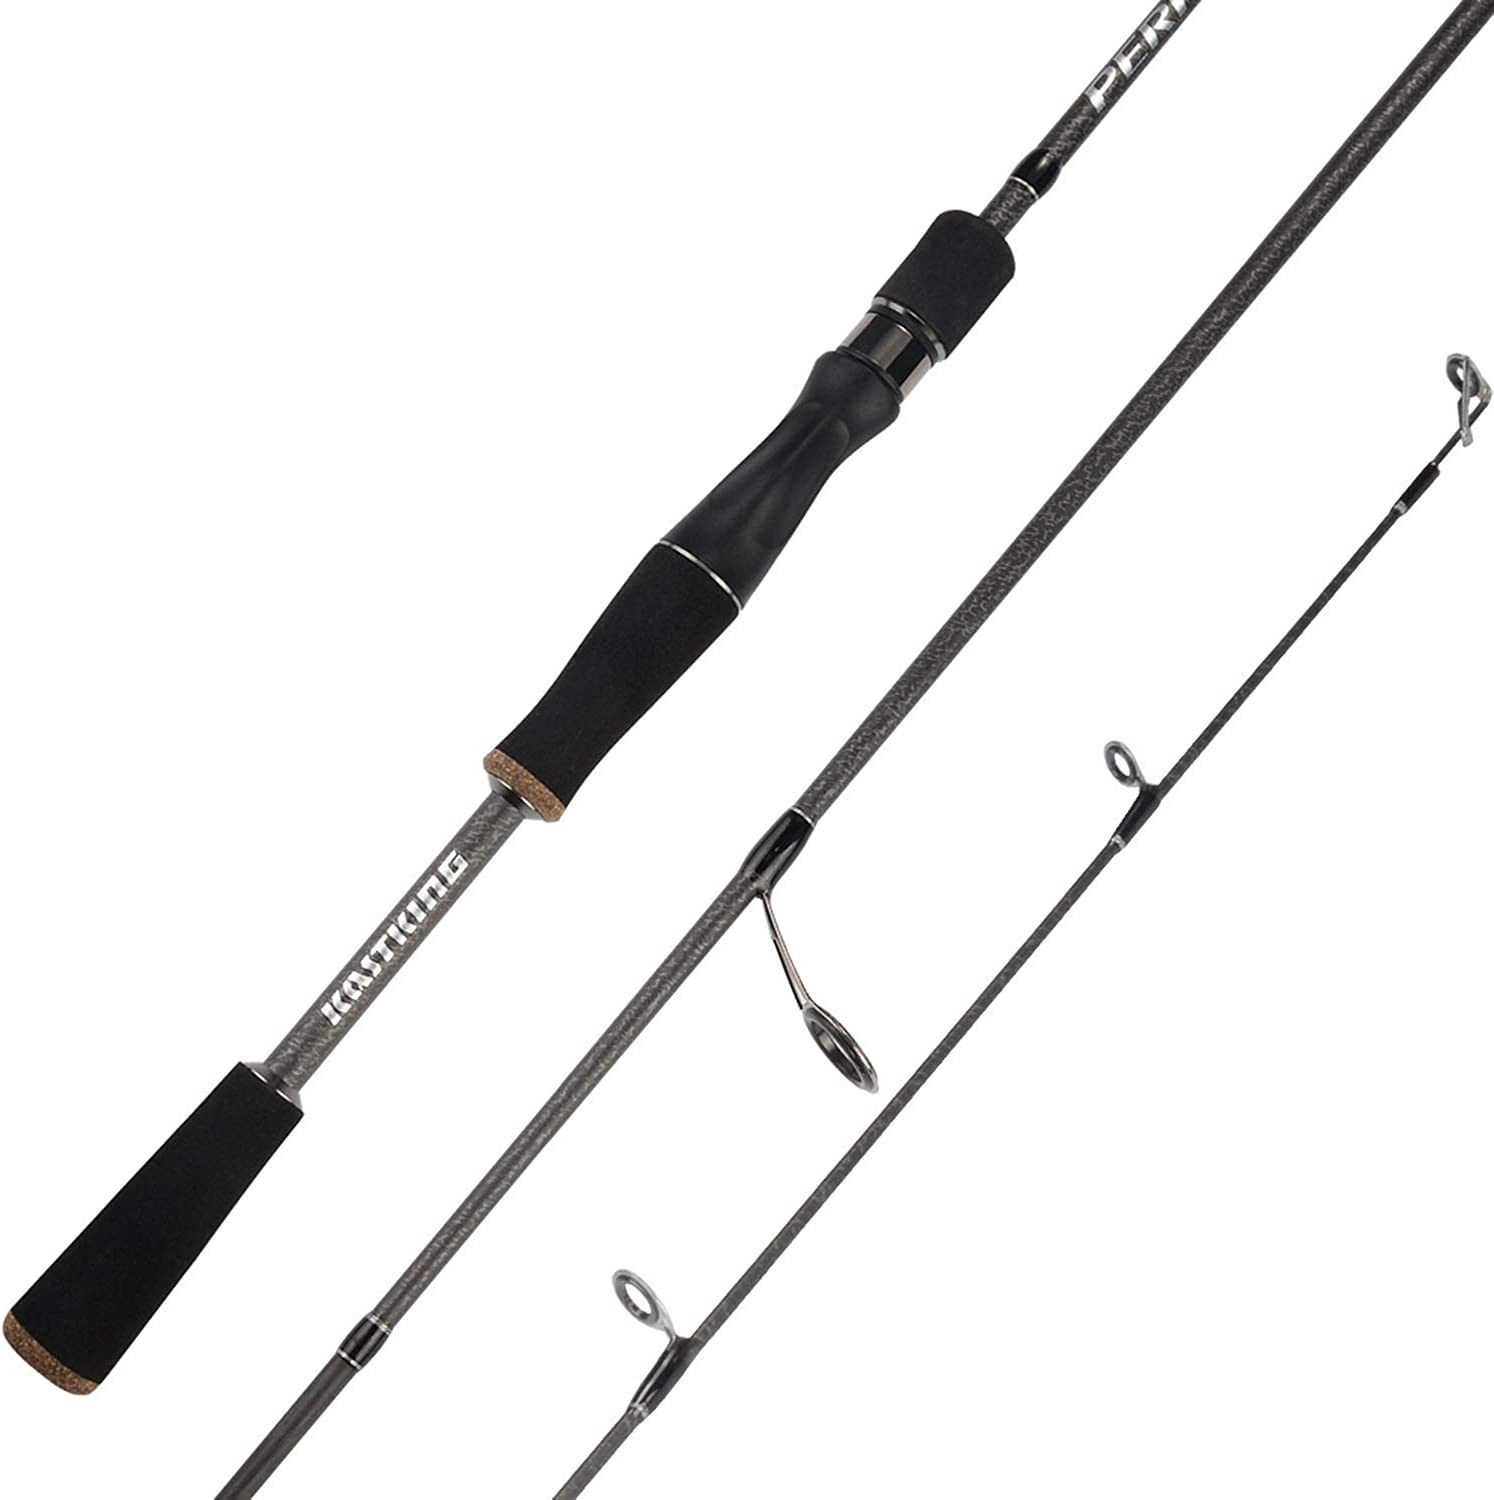 Perigee 1.98M 2.13M 2 Tip Spinning Baitcasting Fishing Rod MF & MH Actions 7-14g Lure Weight Casting Lure Fishing Rod